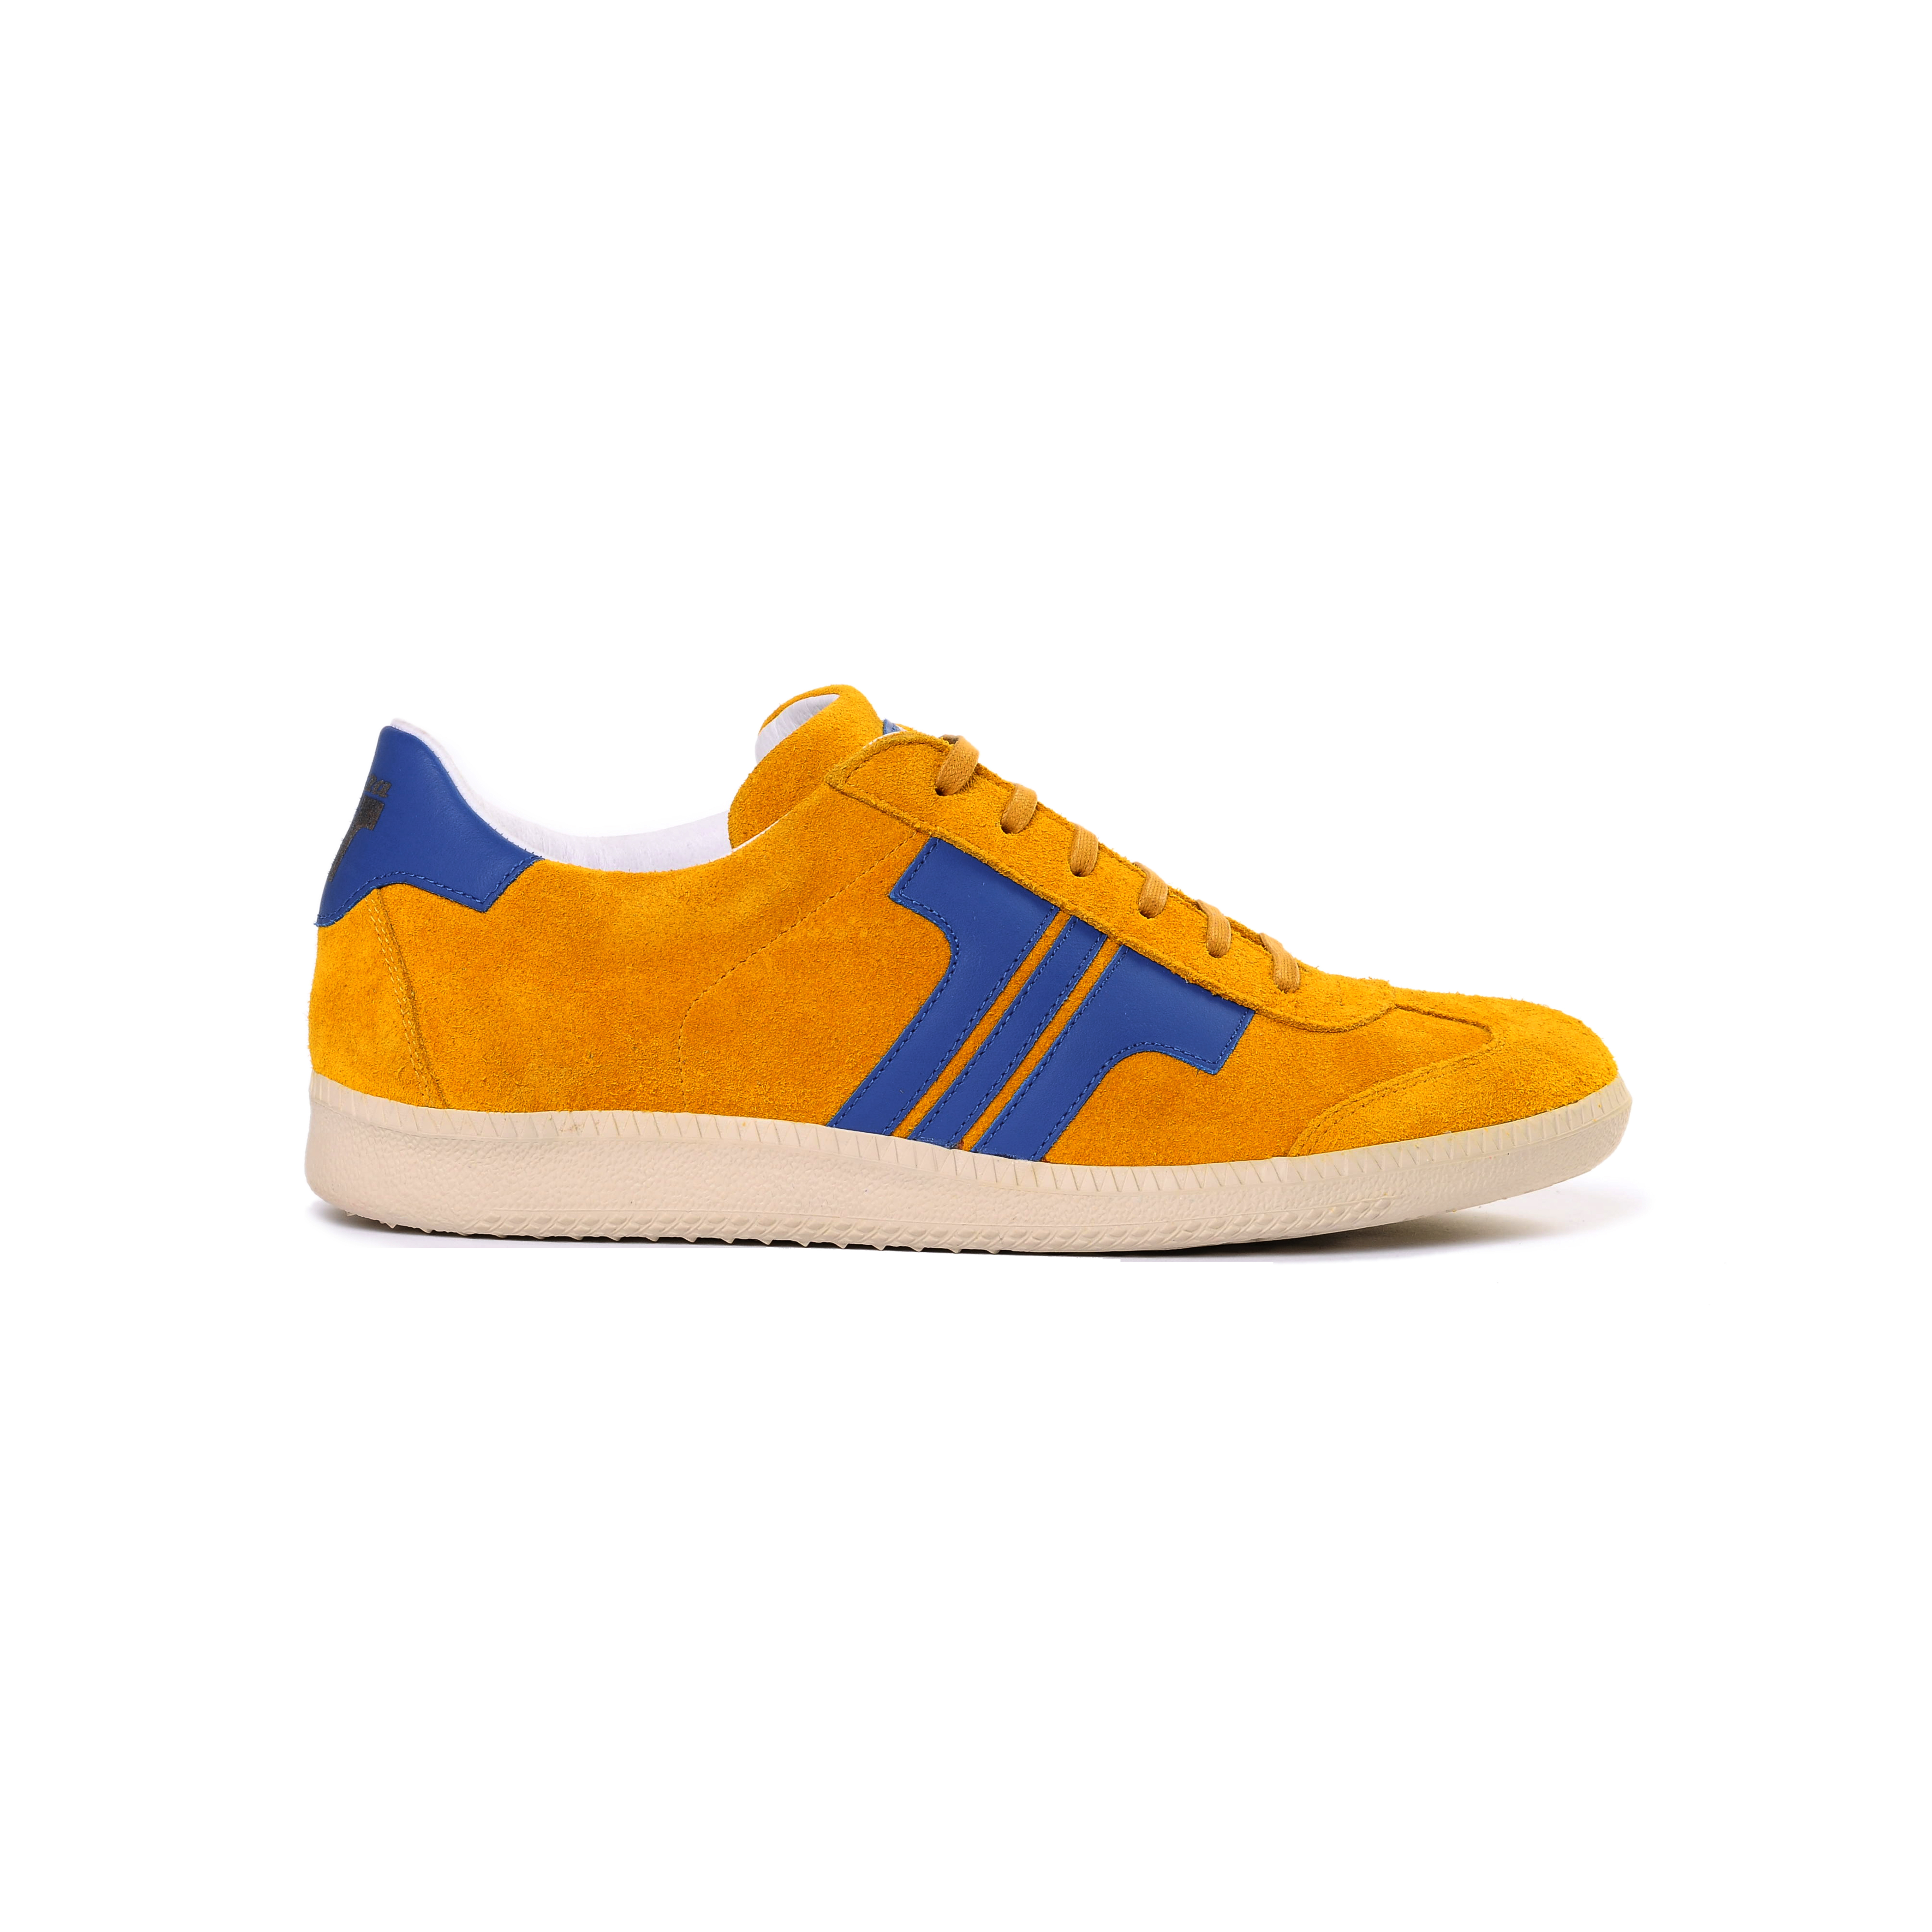 Tisza shoes - Comfort - Yellow-royal